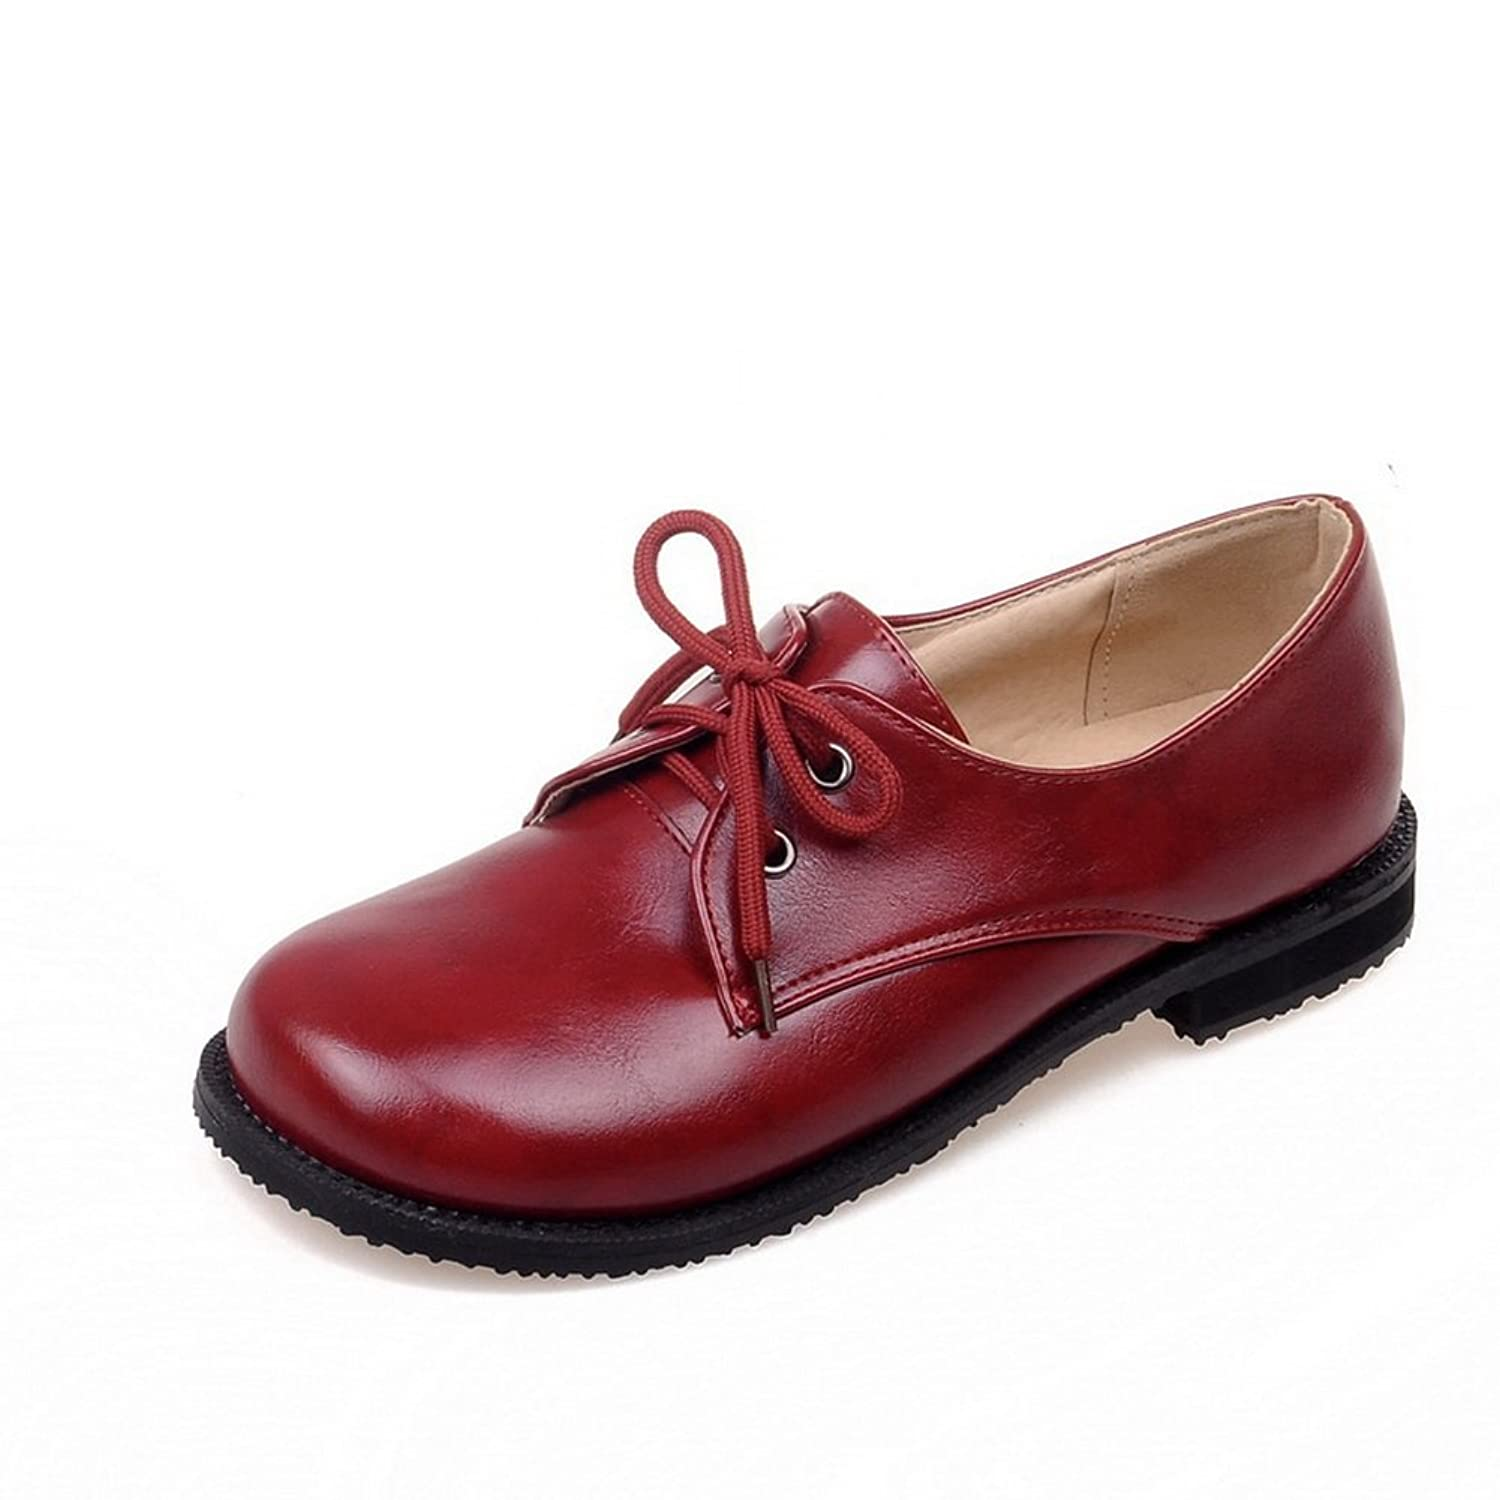 A&N Womens Square Heels Bandage Round-Toe Red Urethane Oxfords-Shoes - 7 B(M) US